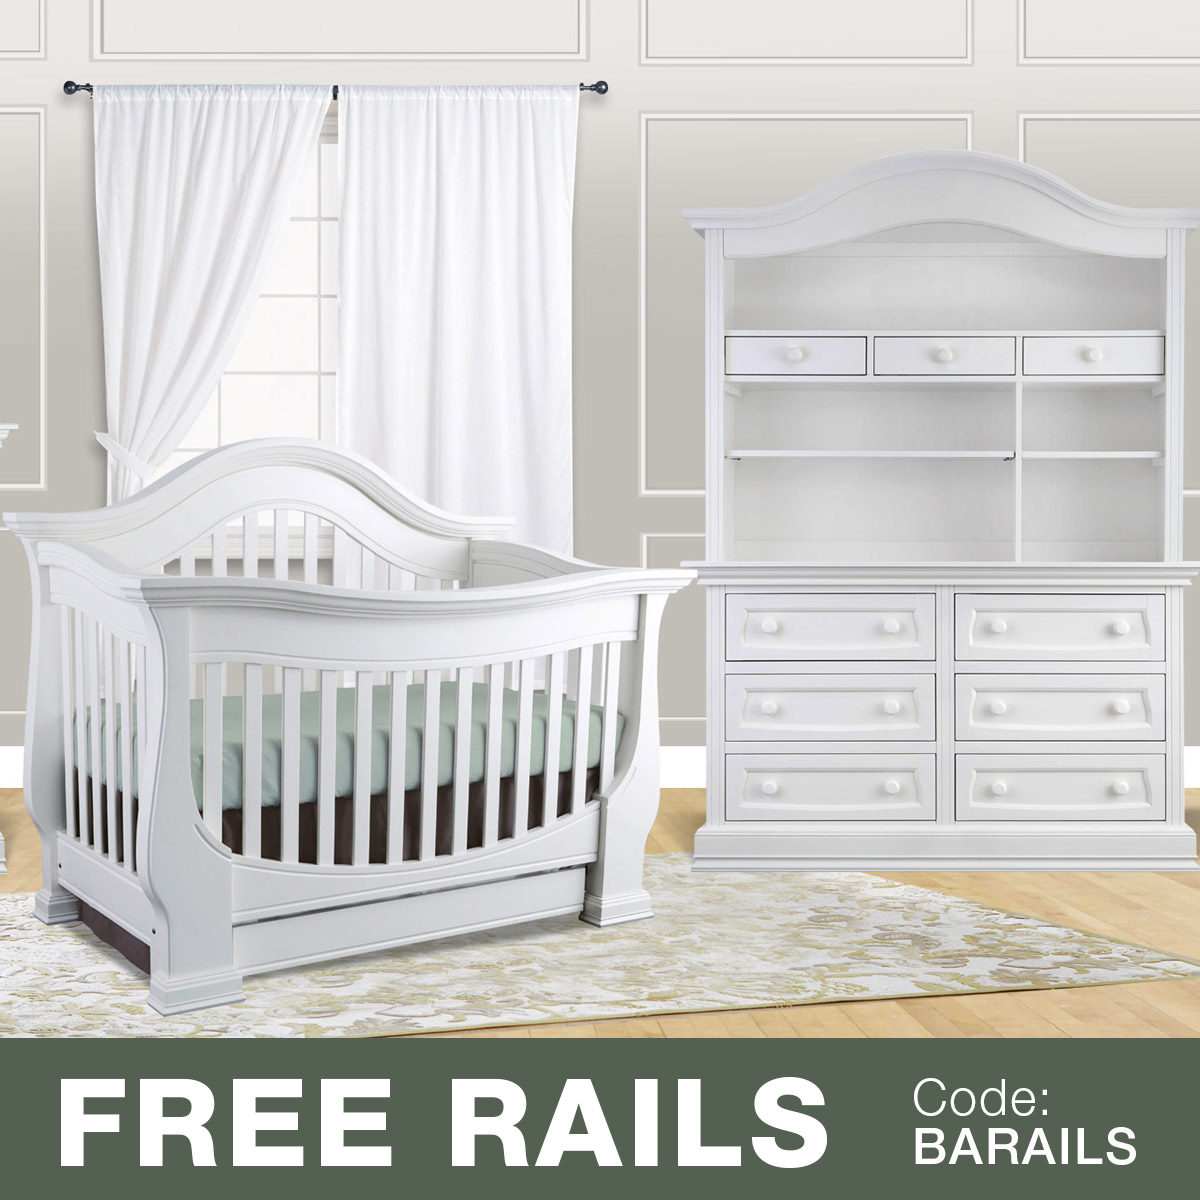 Baby appleseed 3 piece nursery set davenport 3 in 1 convertible crib double dresser and hutch in pure white free shipping